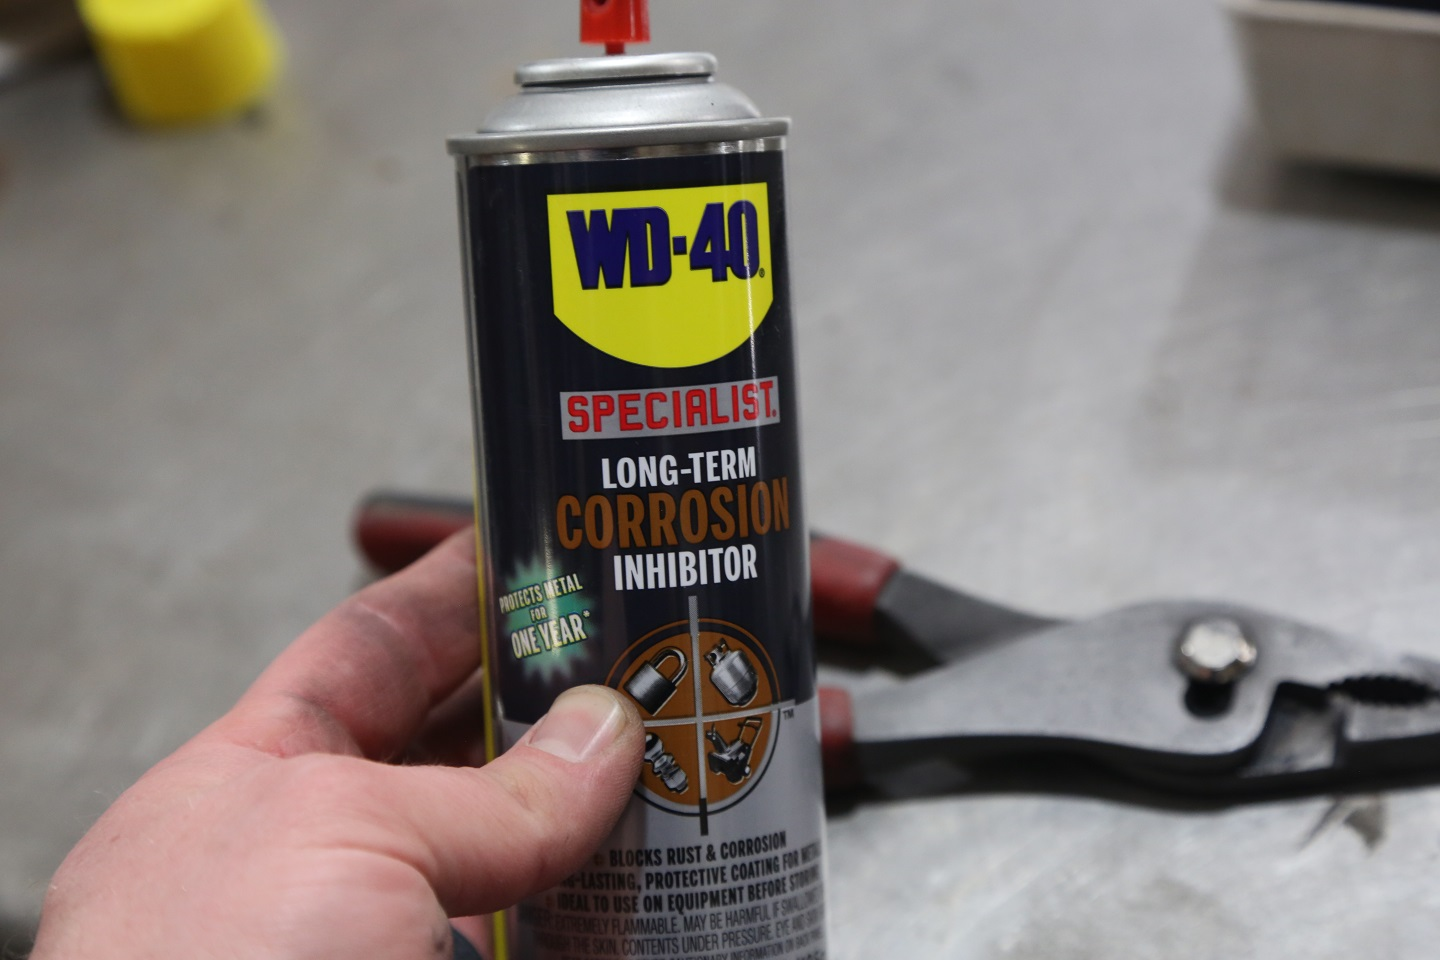 We used WD-40 Long-Term Rust Inhibitor to seal the metal so that it won't rust up.